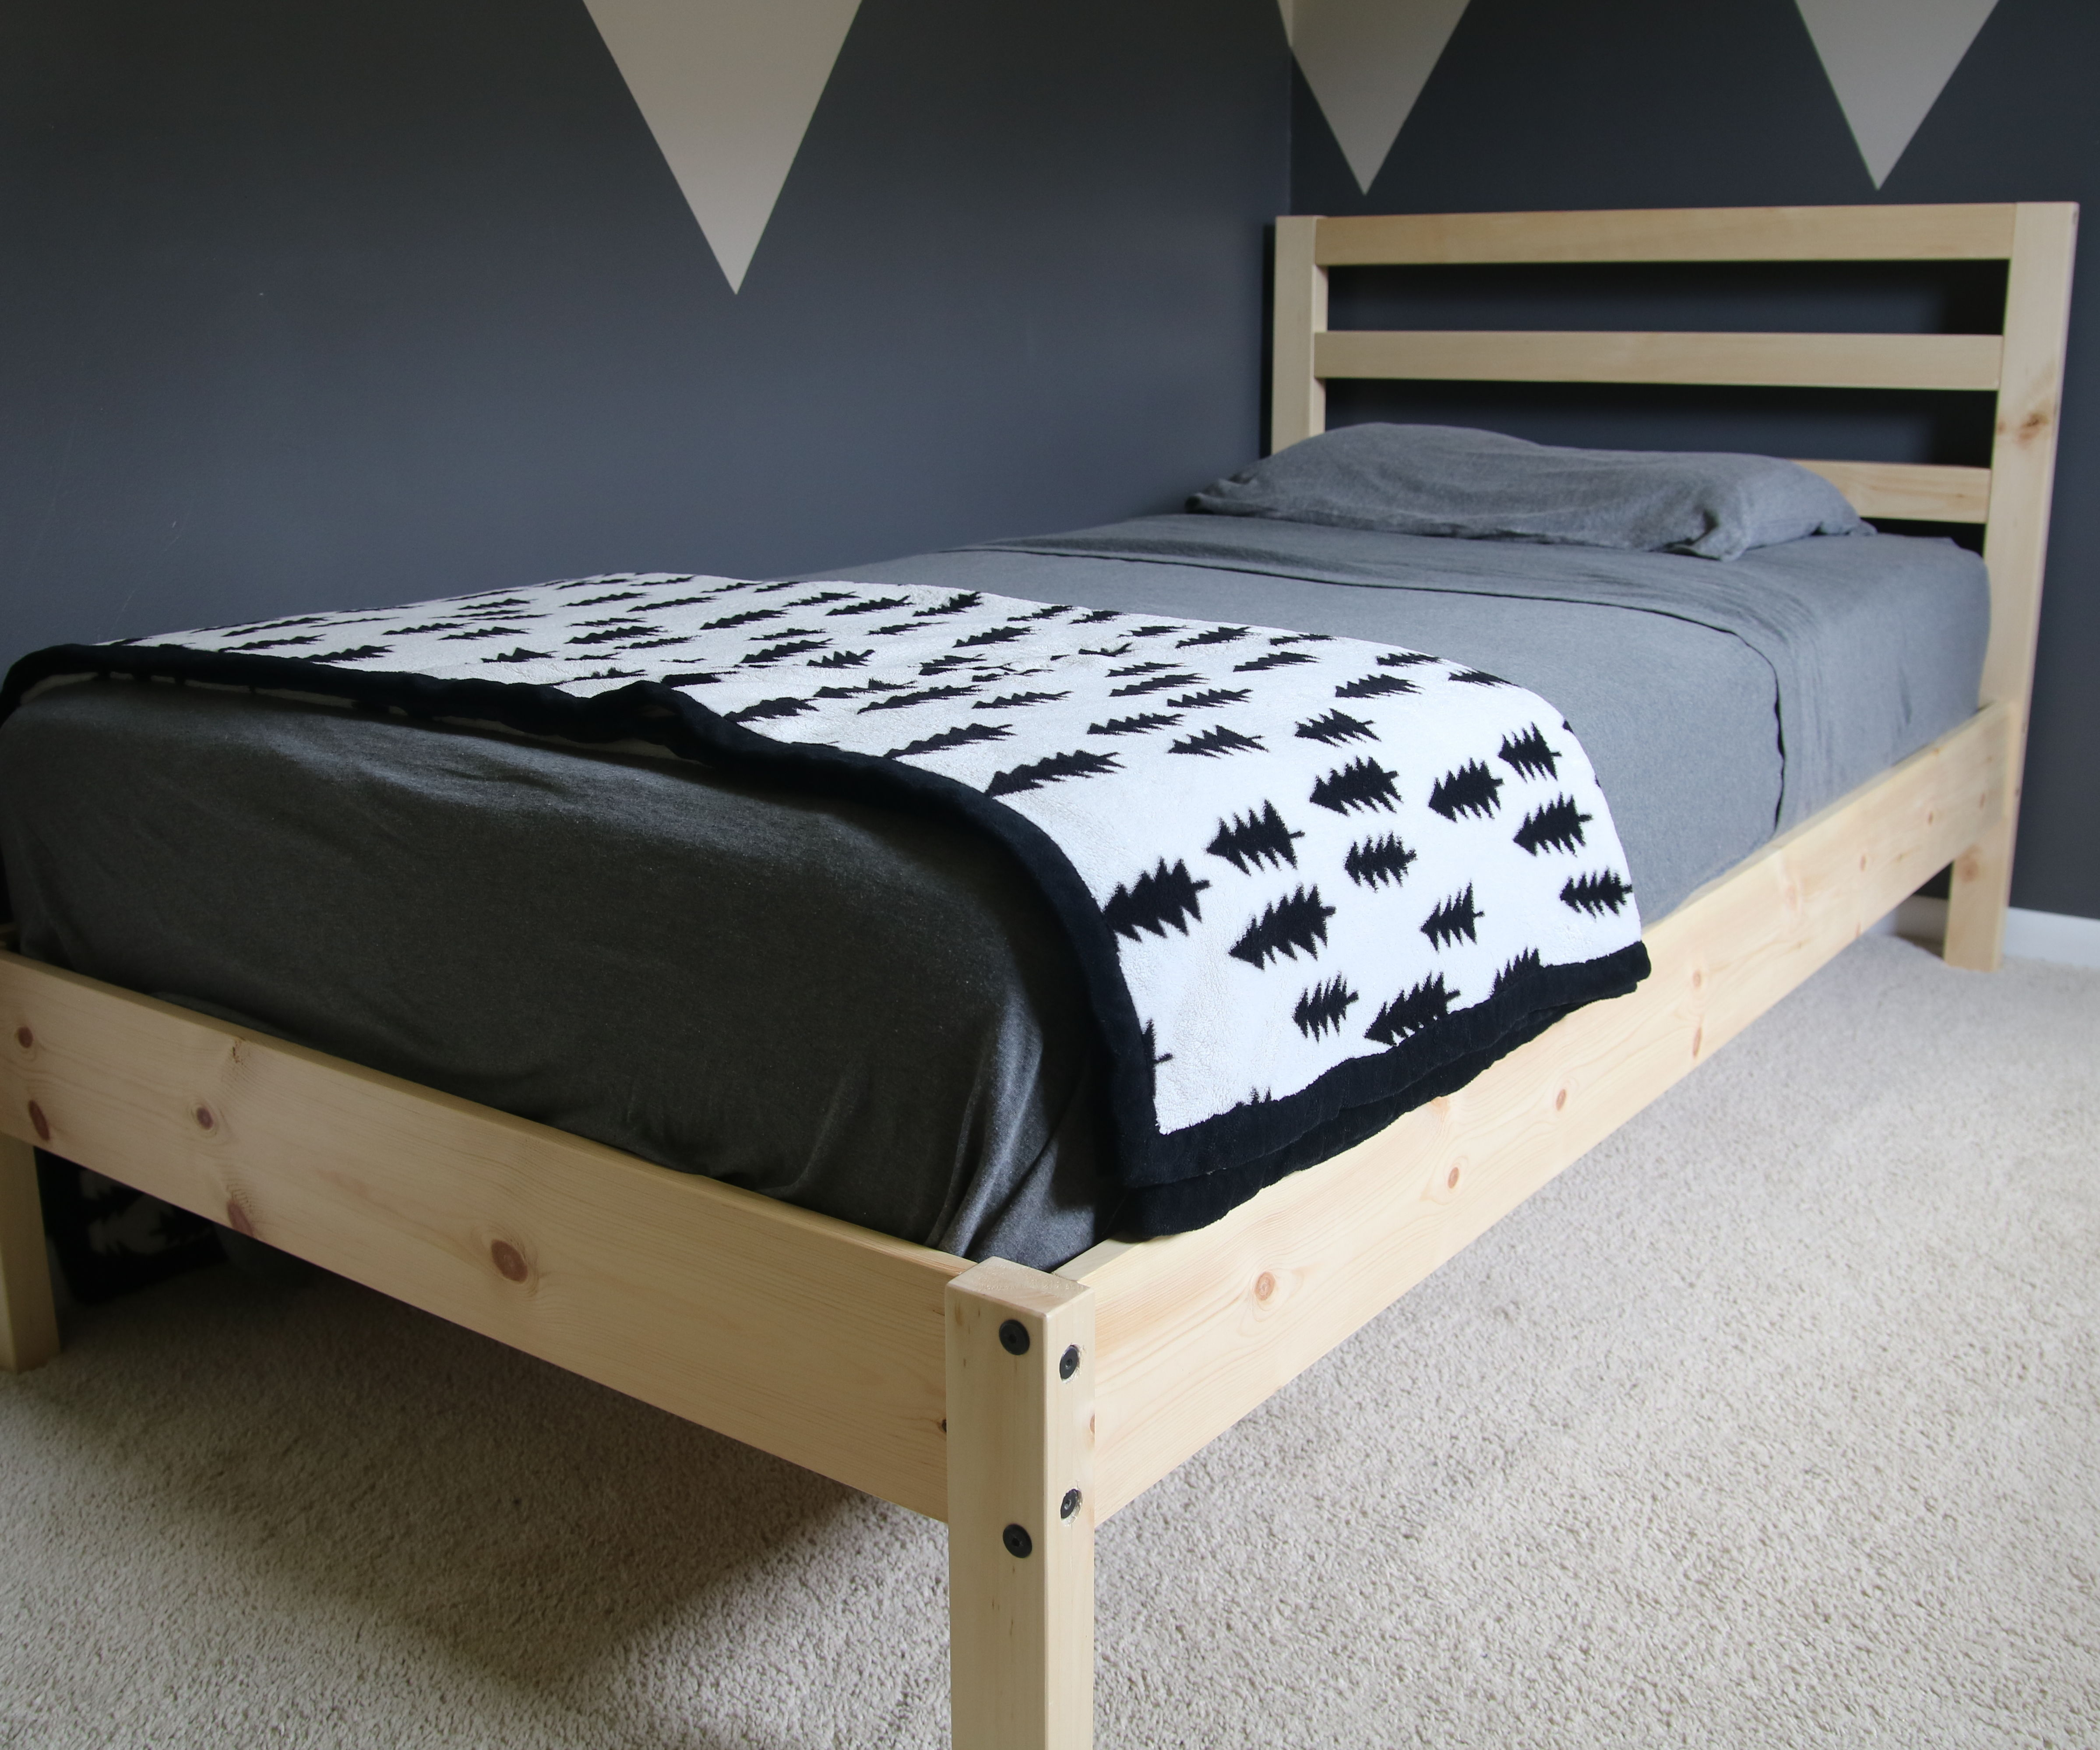 Diy Twin Bed 8 Steps With Pictures Instructables